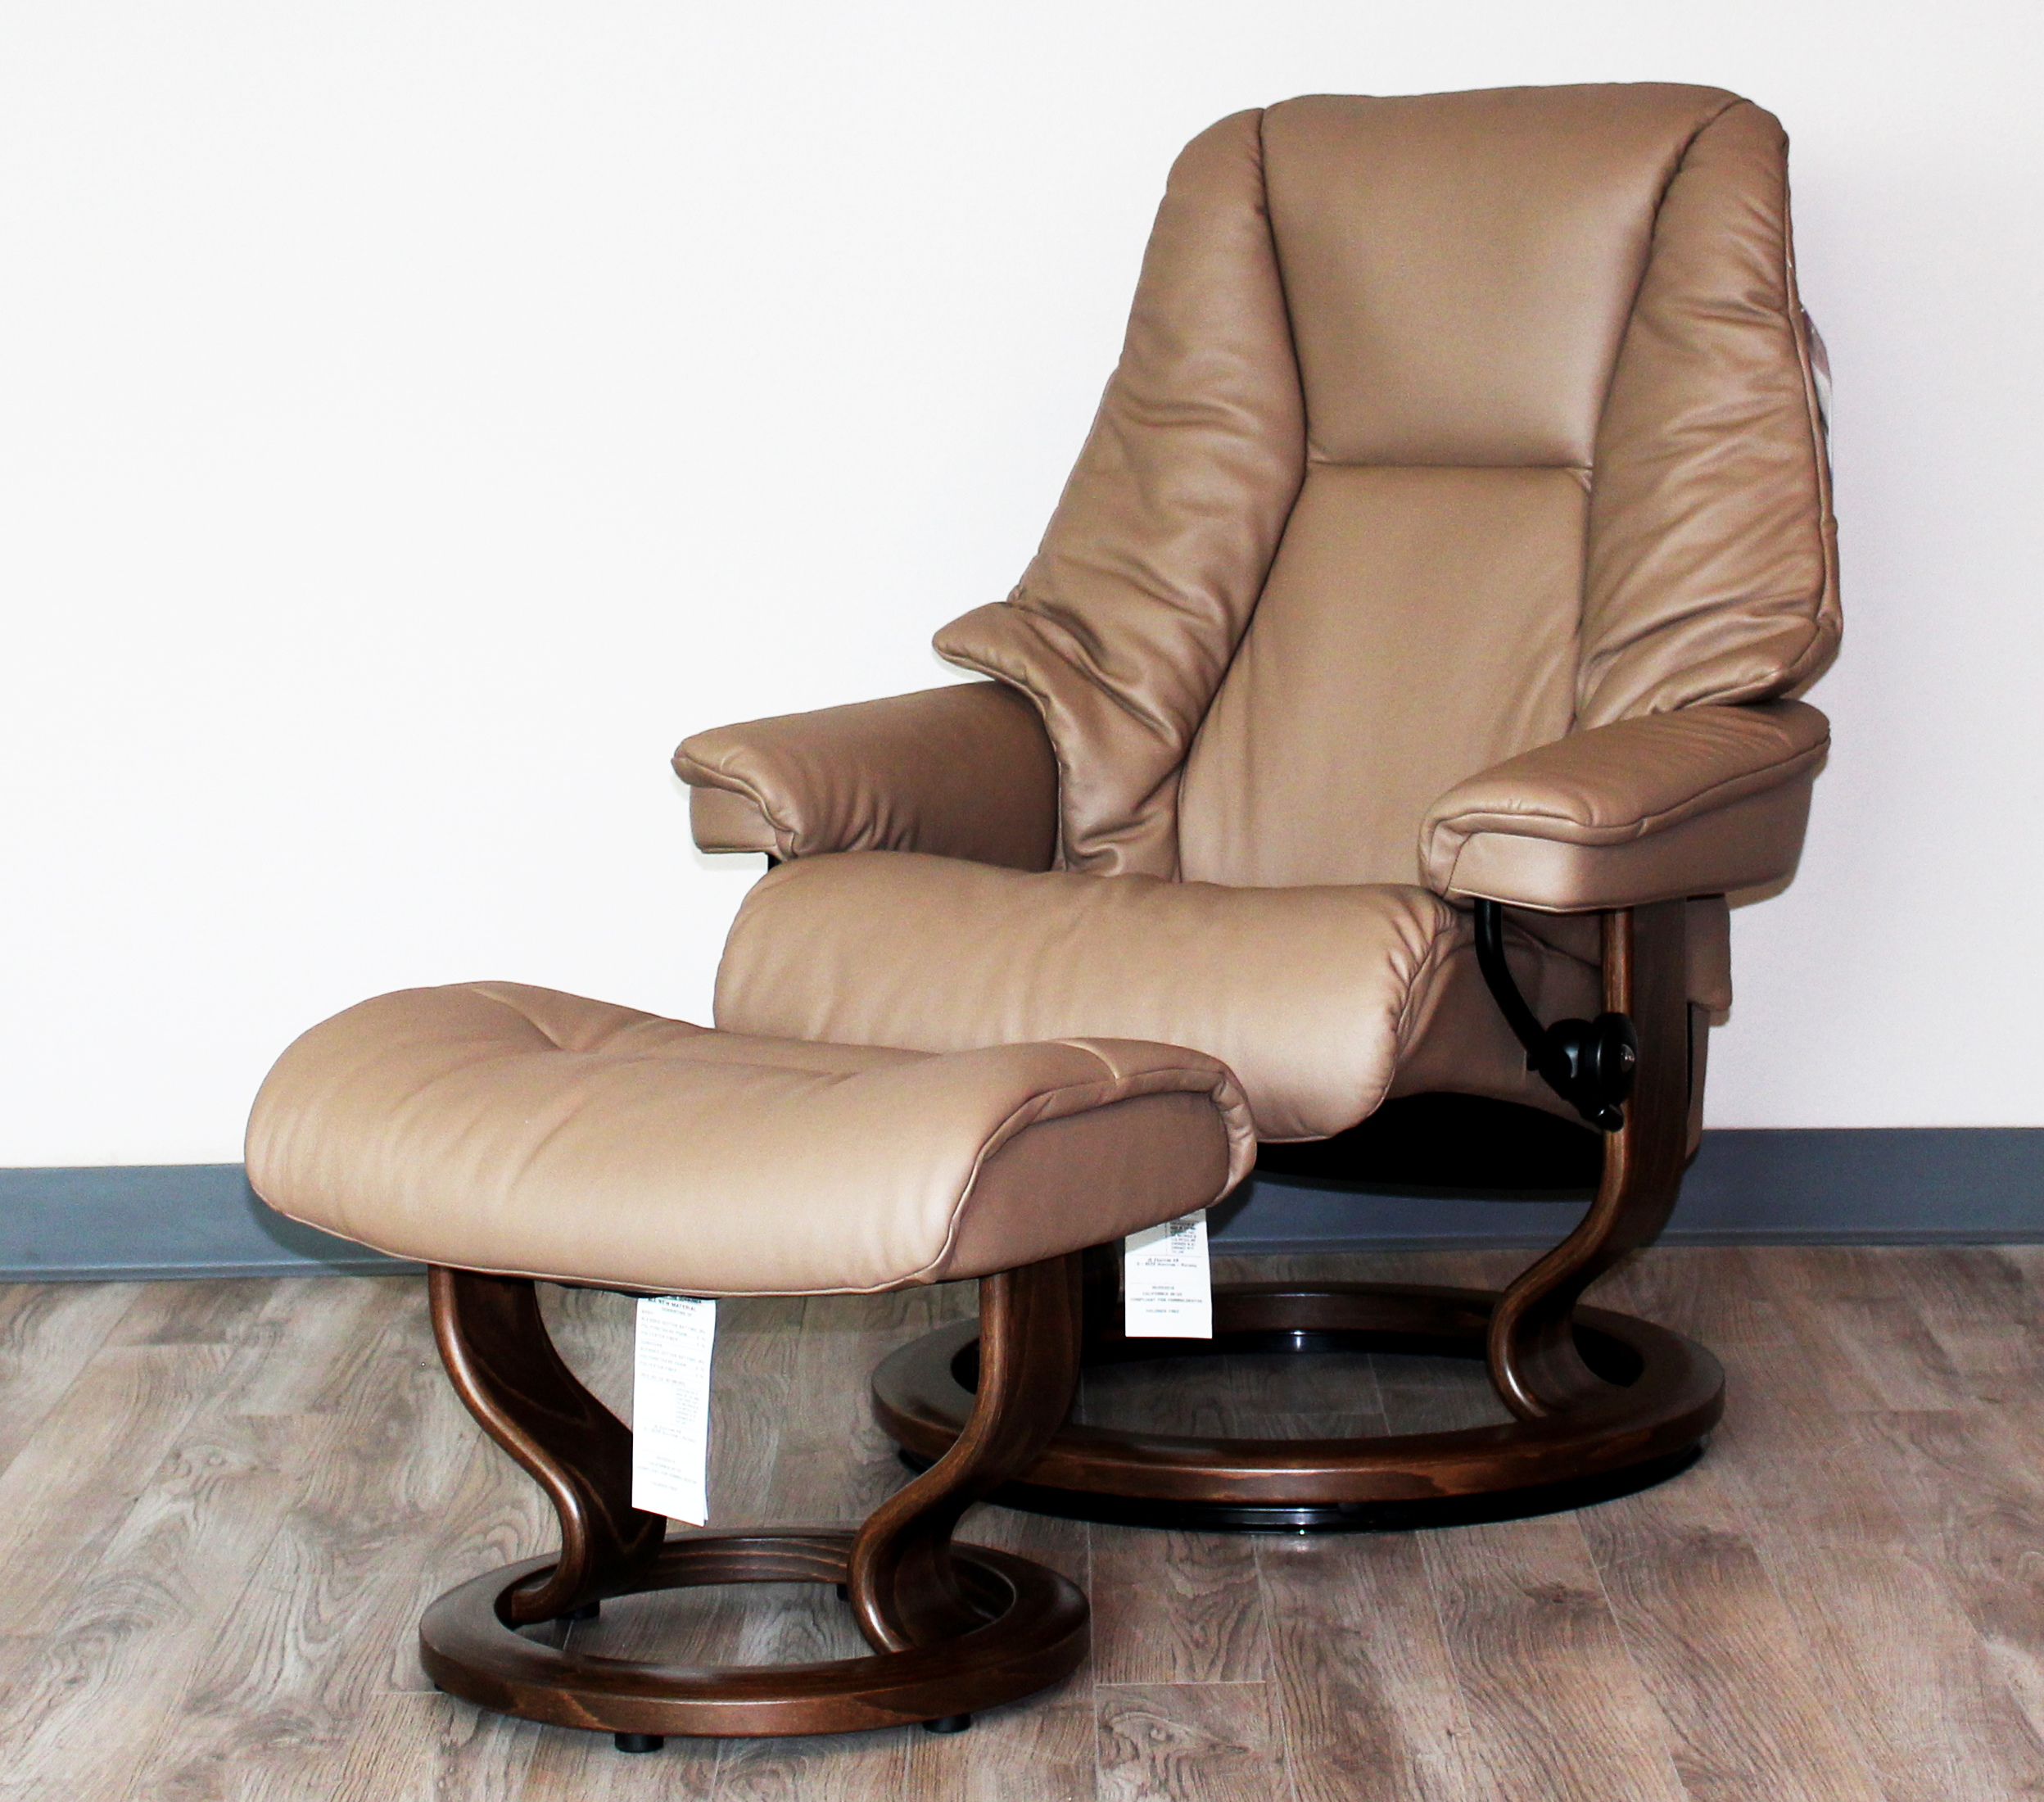 Stressless-world.com Ekornes Stressless Repair Manual Ballerogon